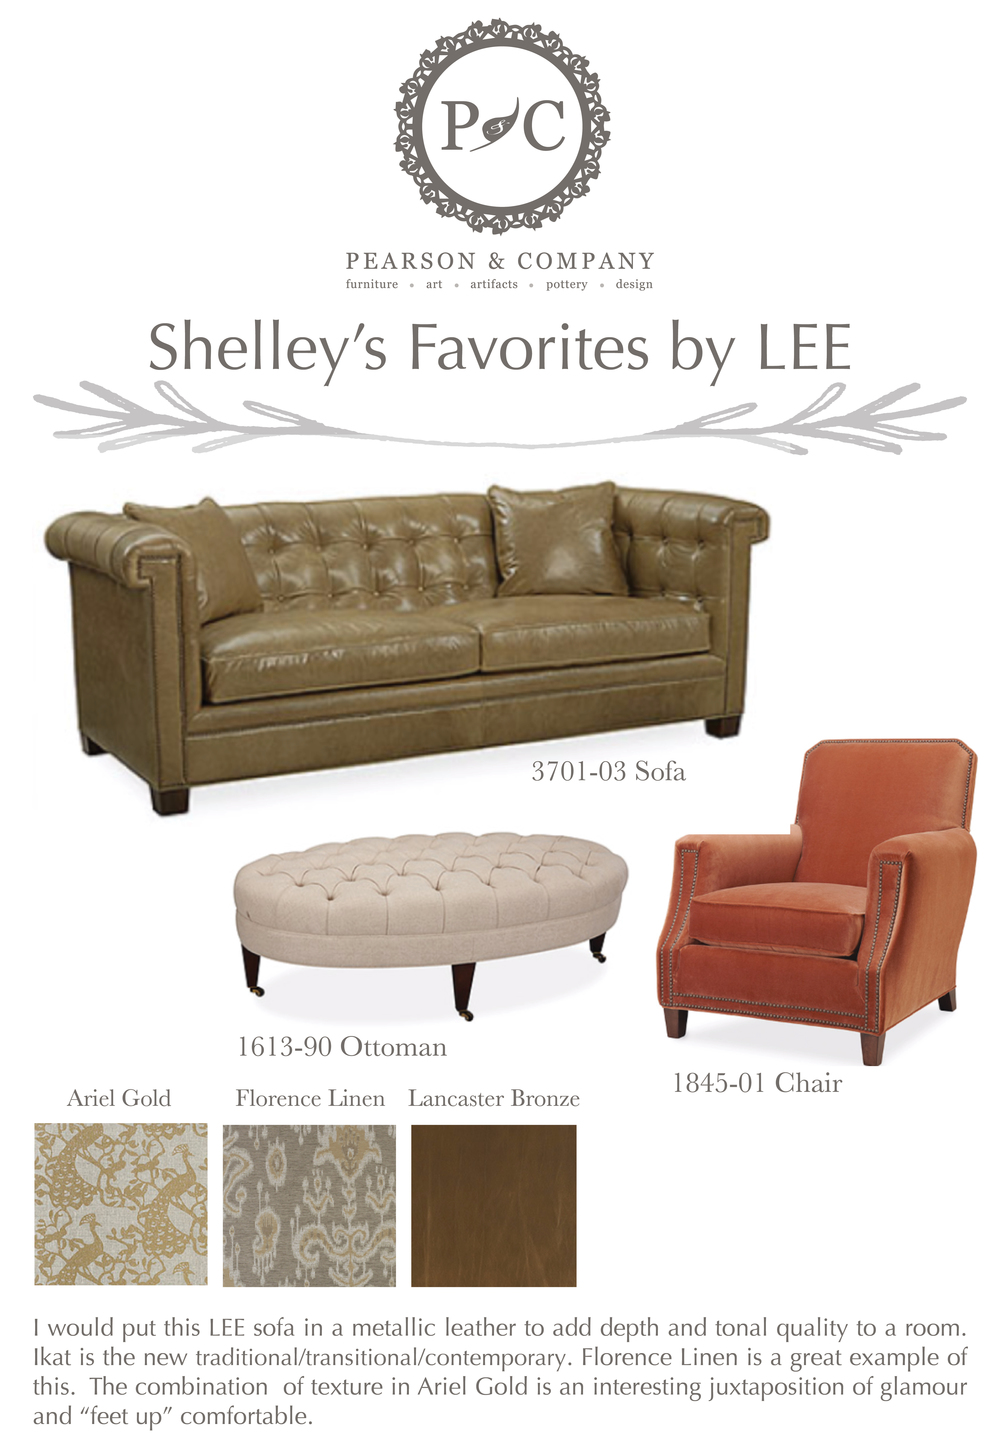 shelleys lee picks.jpg